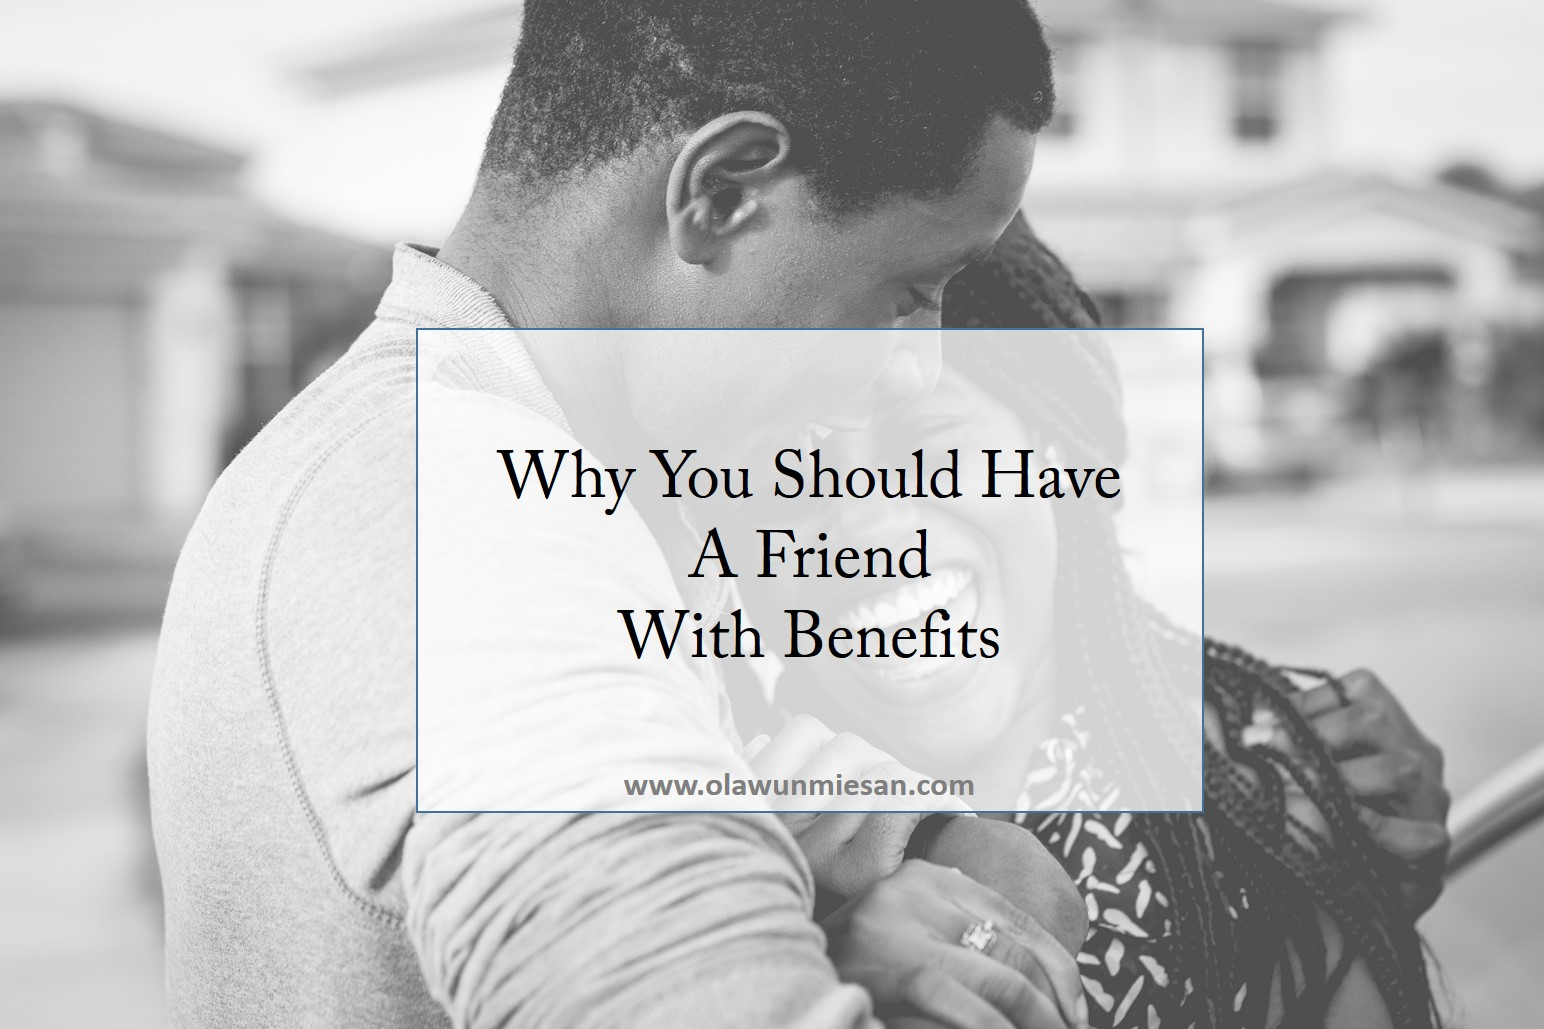 Why You Should Have A Friend With Benefits